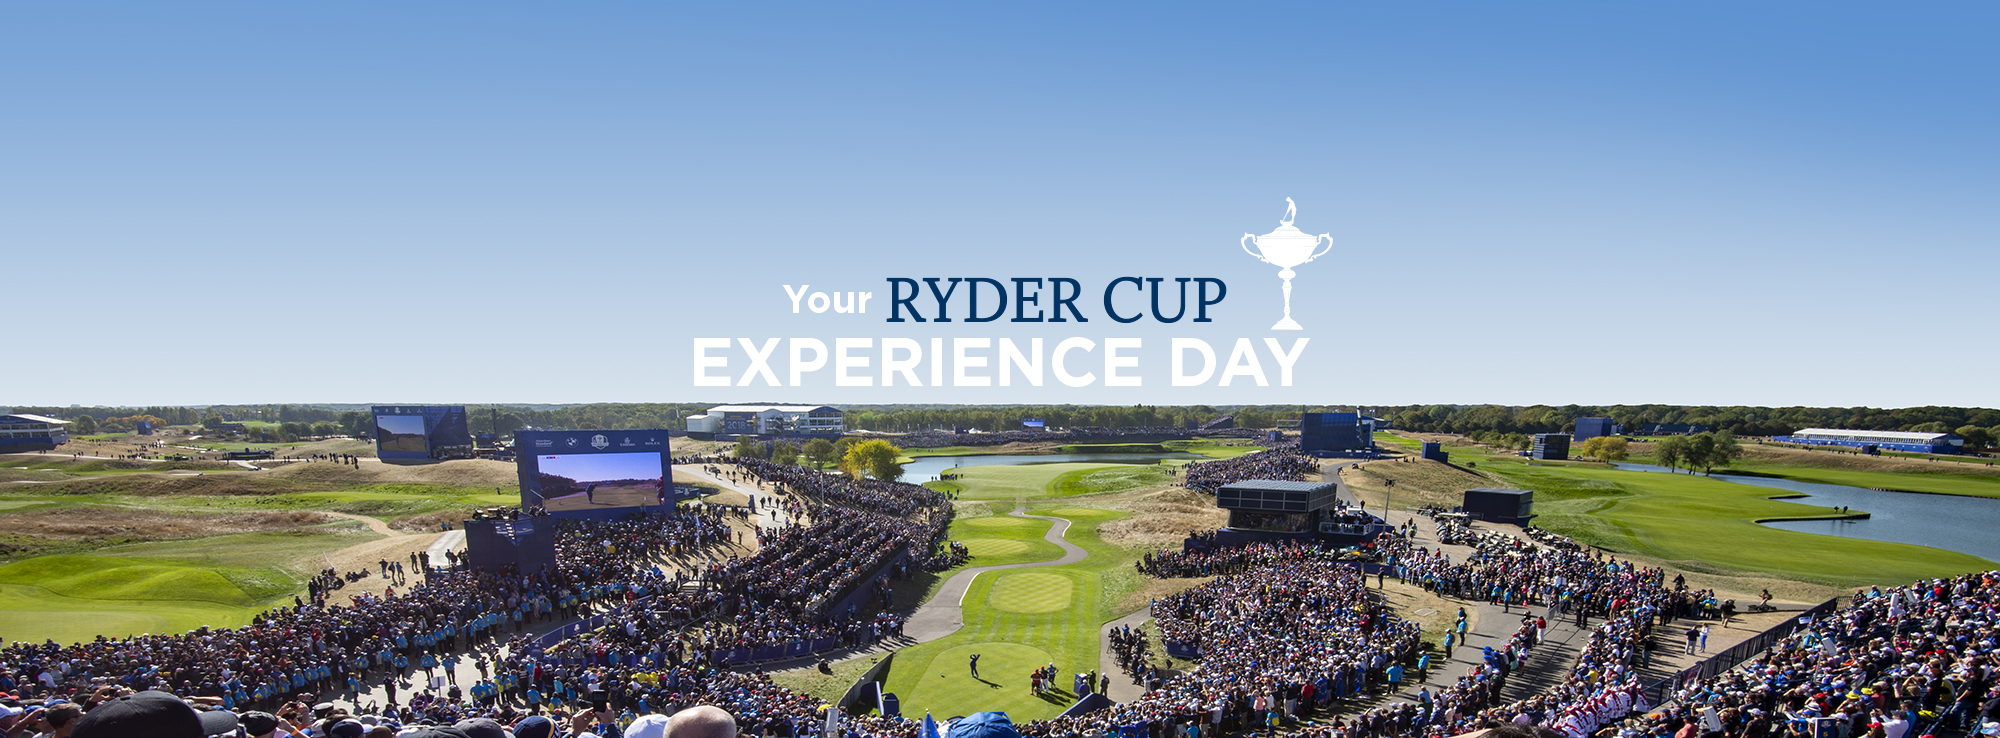 Ryder Cup experience day